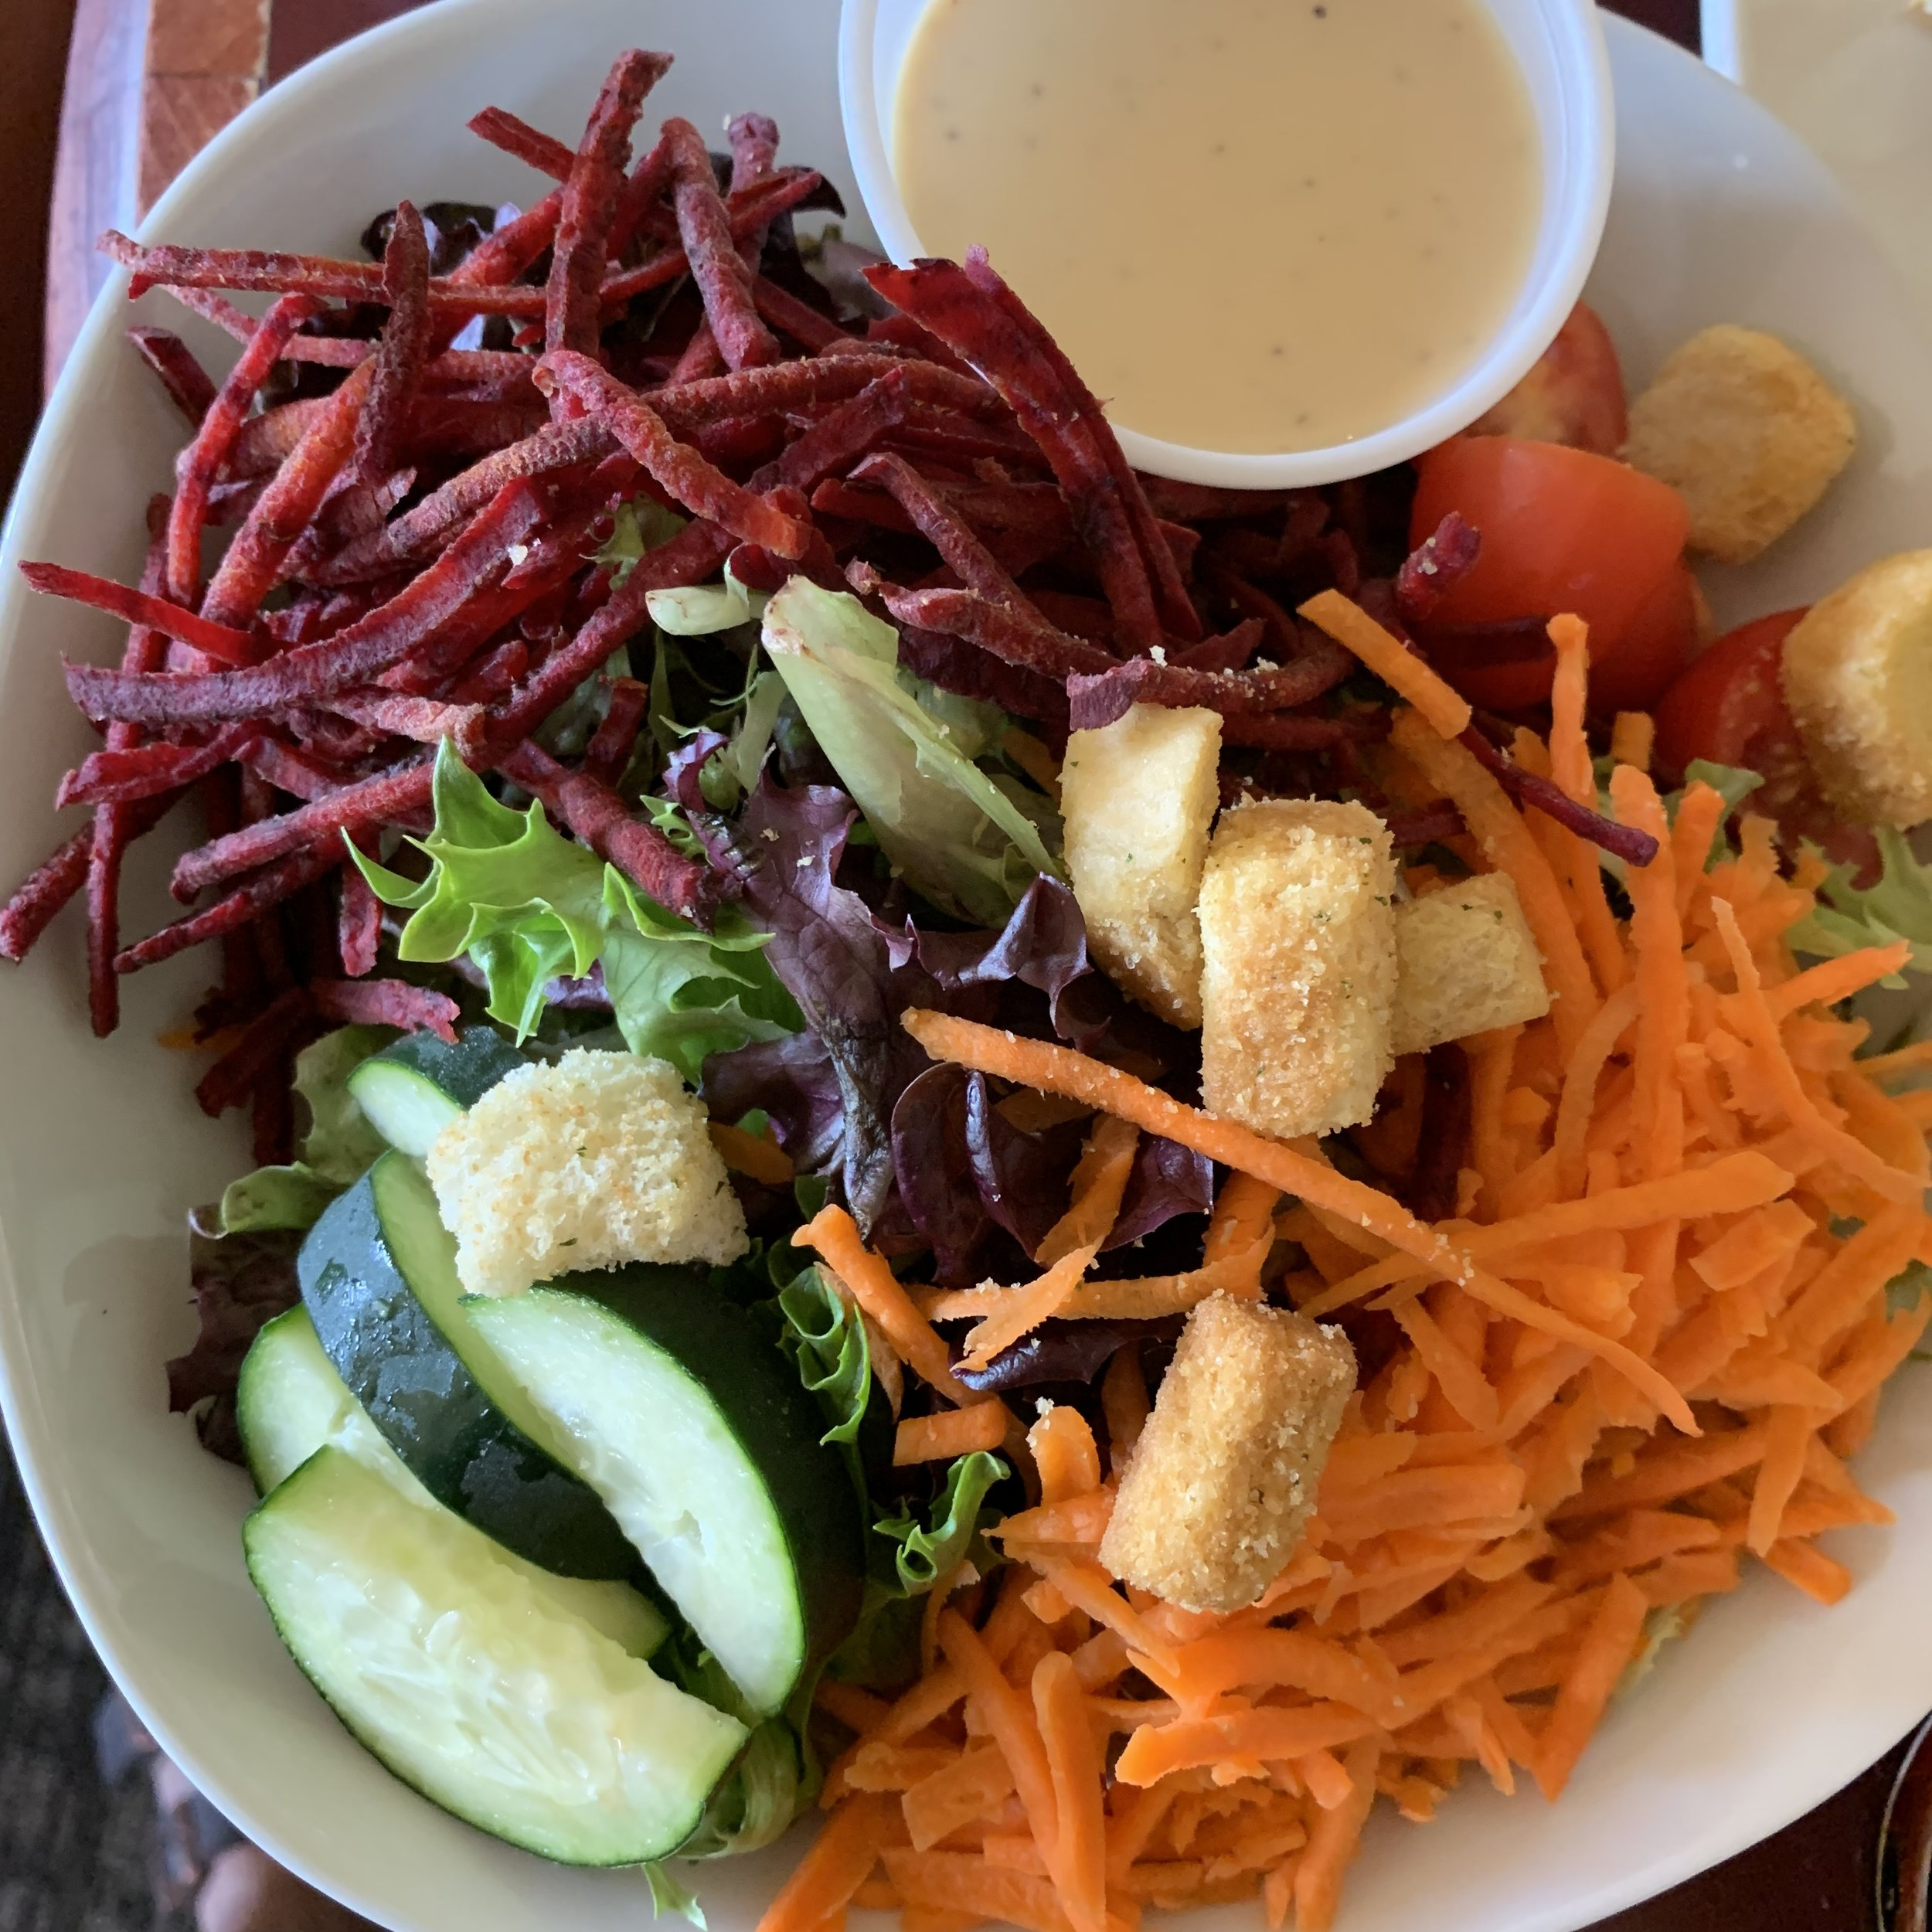 House salad with grated carrots and raw beets. I had the honey mustard dressing.